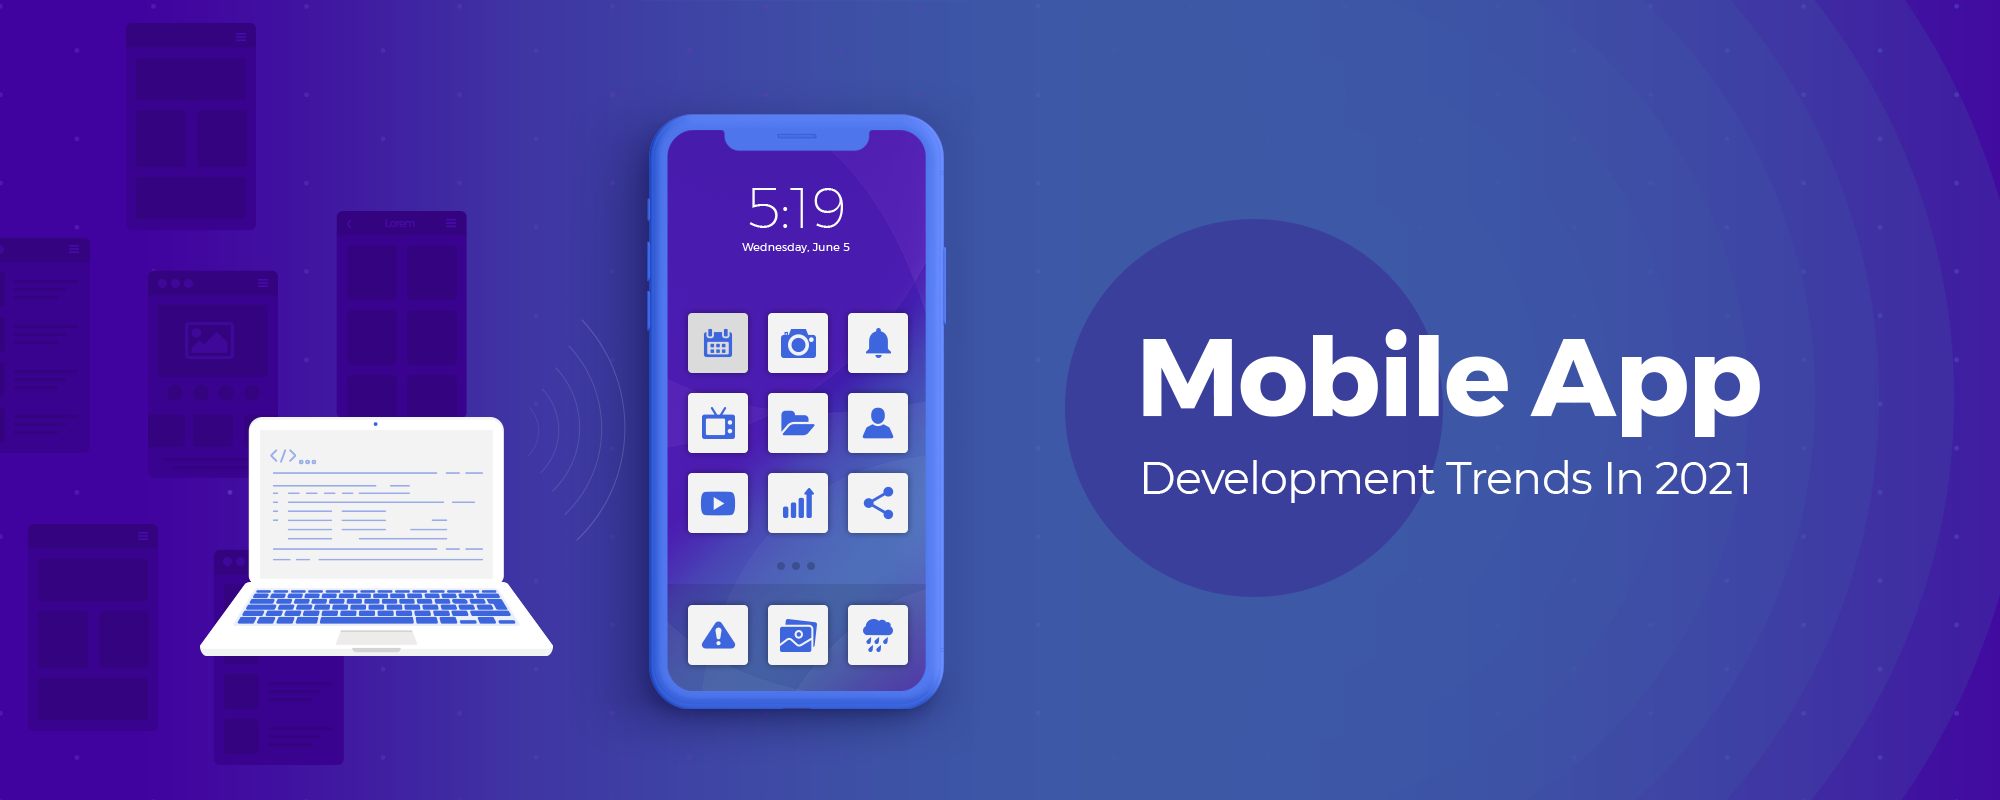 Meaning, trend and future of Mobile App development